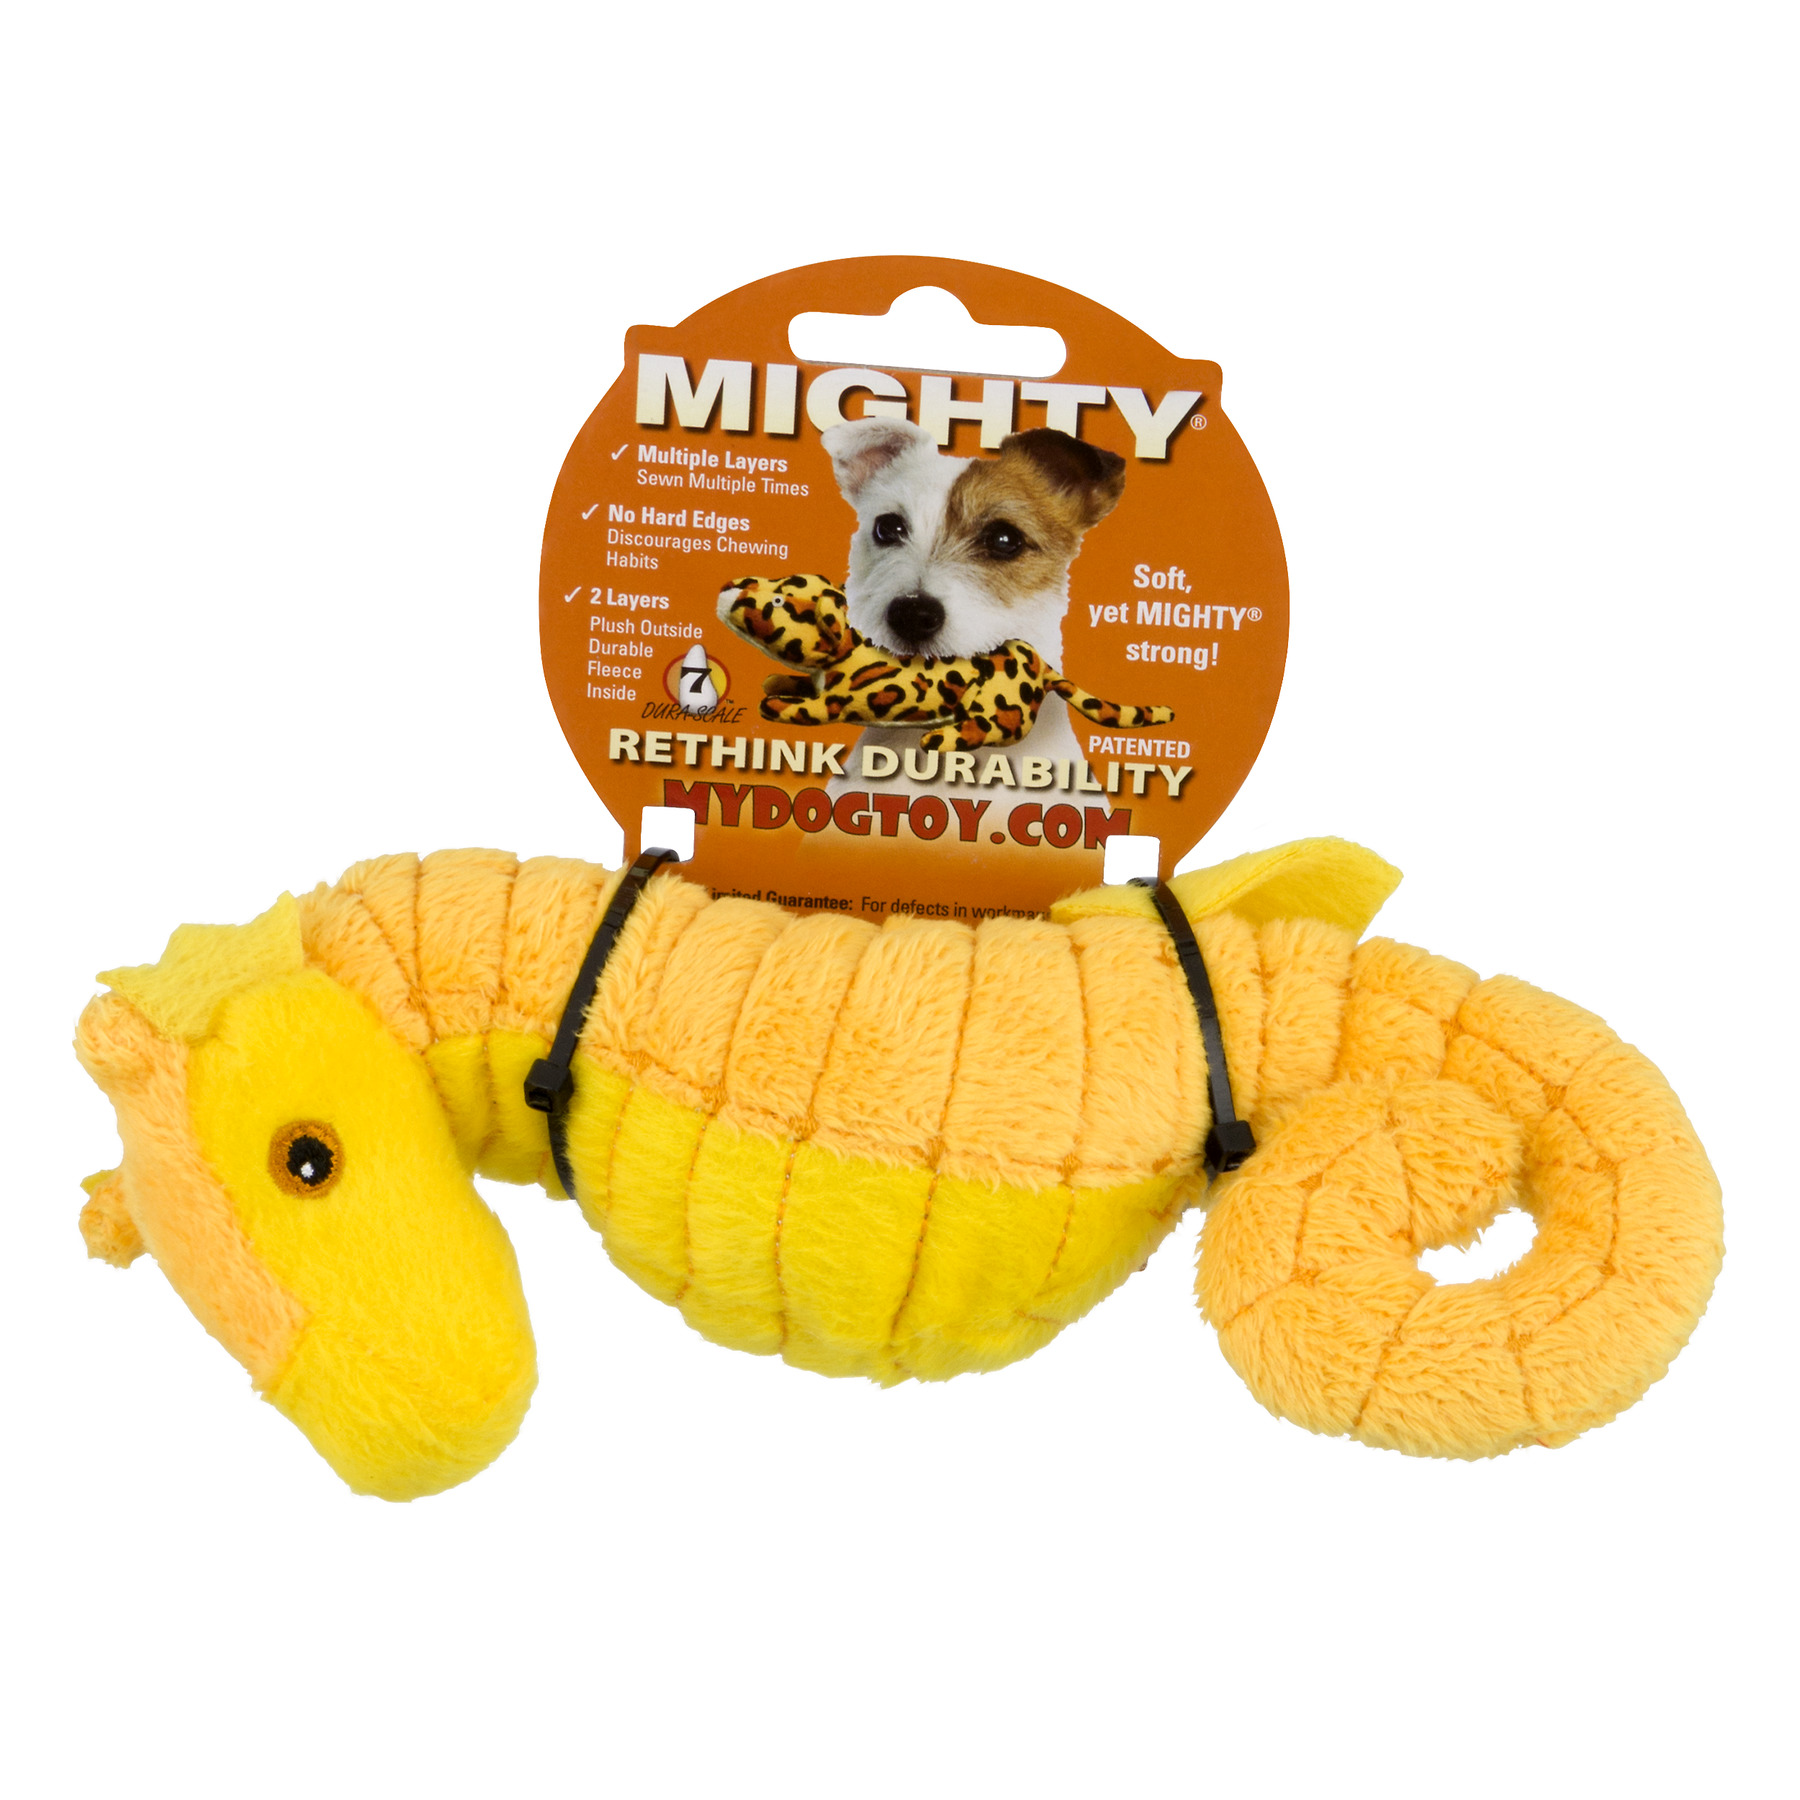 VIP Products Mighty Seahorse Dog Toy, Multicolor